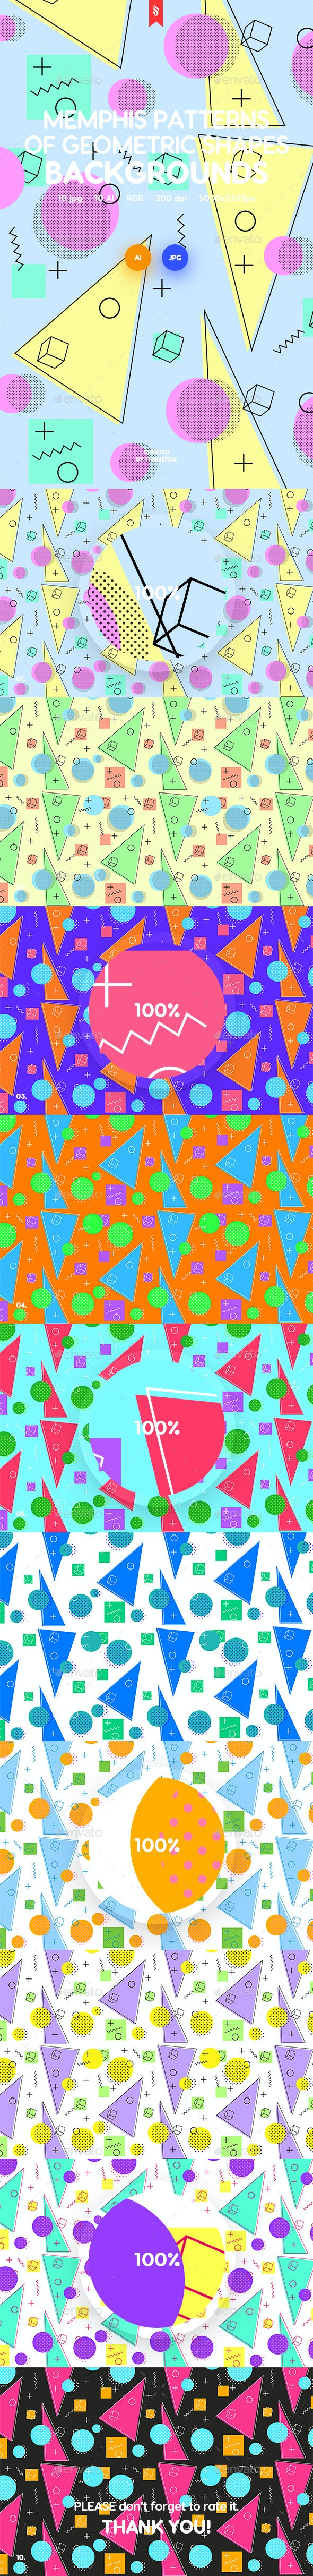 Memphis Patterns of Geometric Shapes Backgrounds by